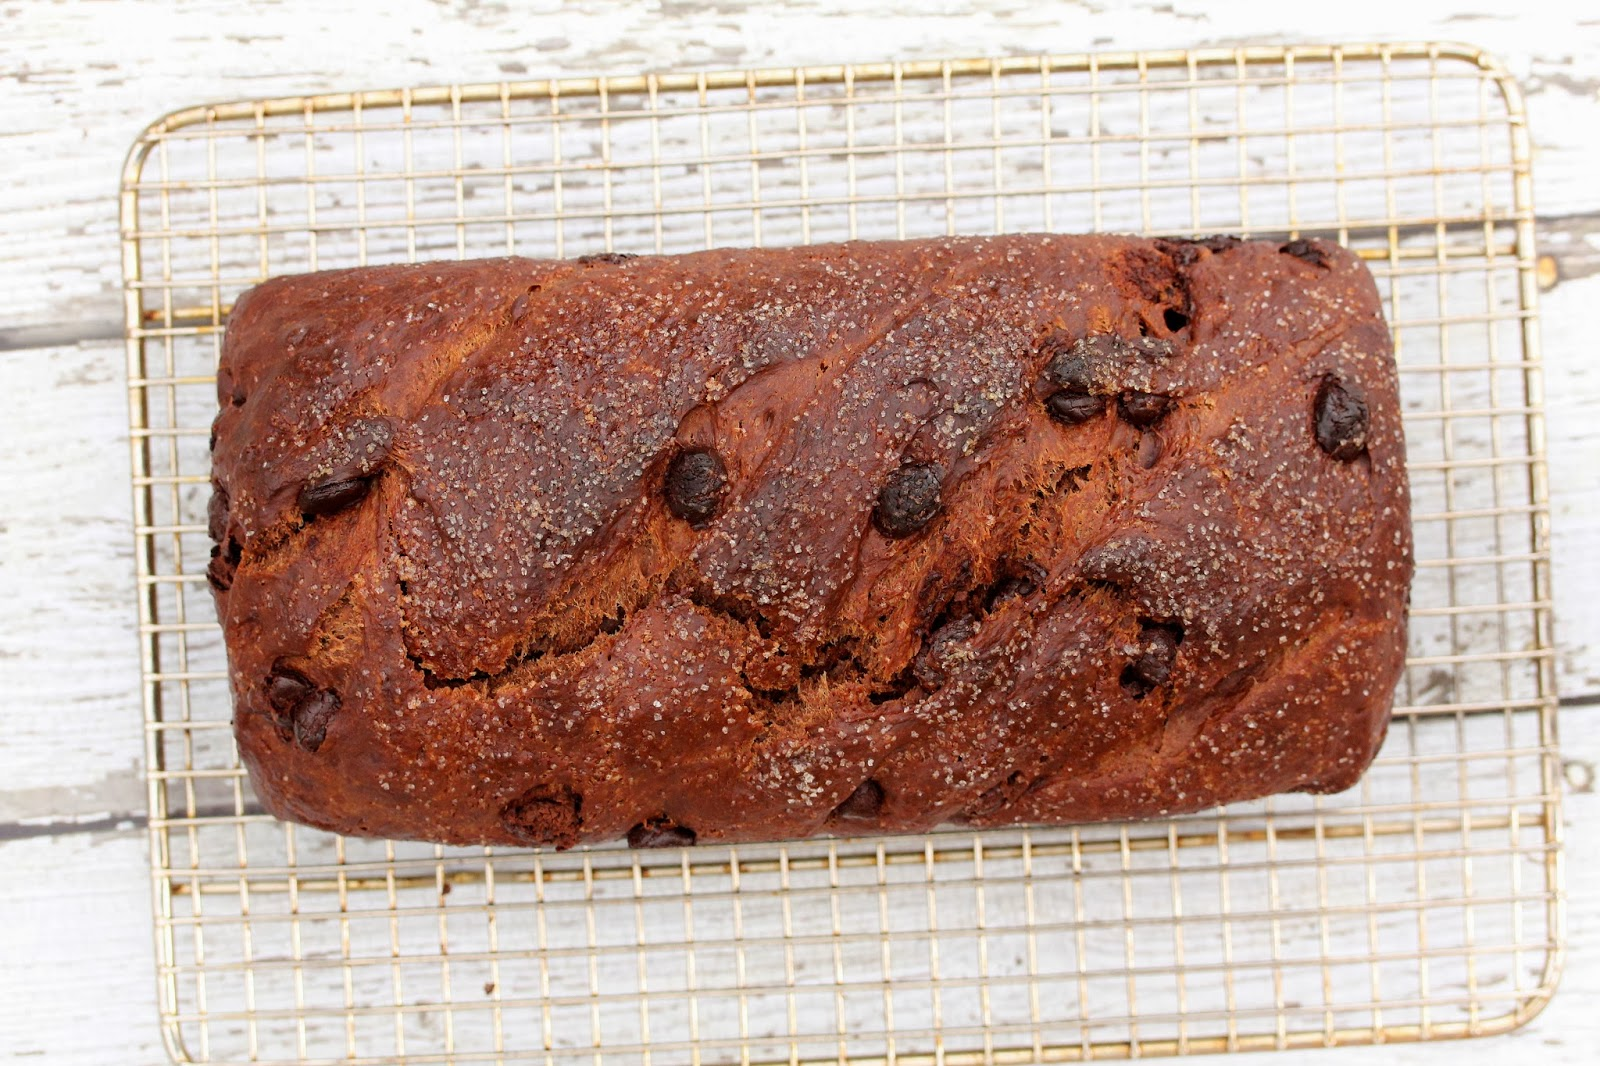 No Knead Chocolate Bread Dough for Chocolate Chip Bread